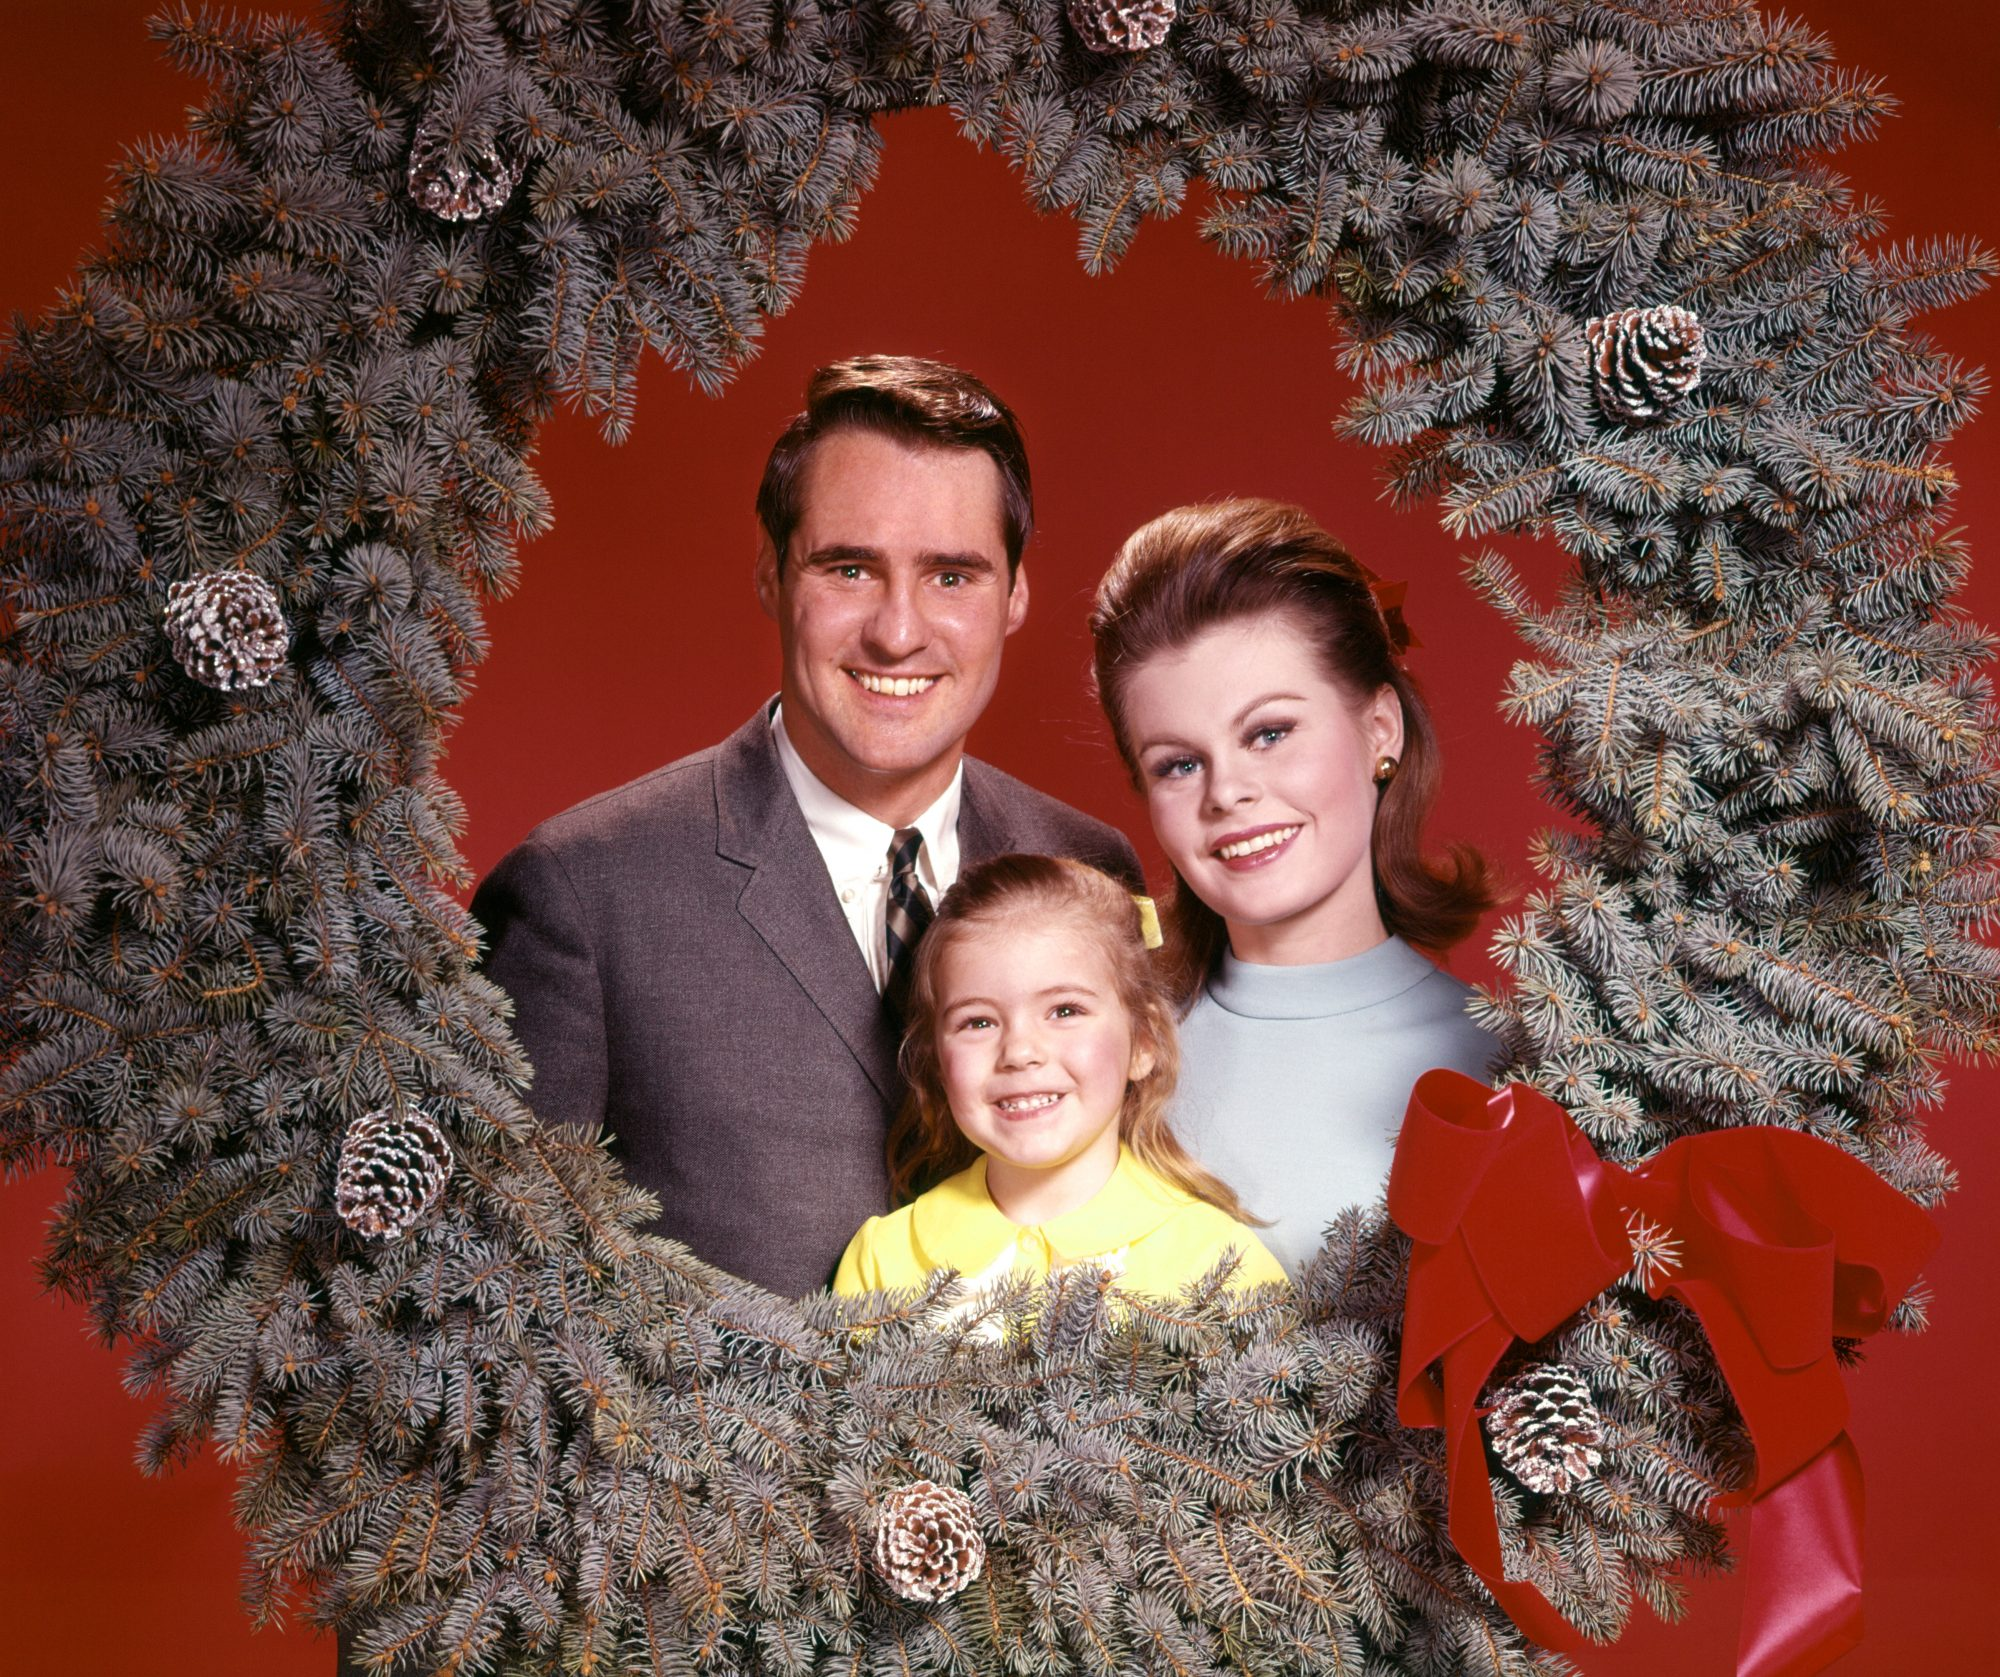 Happy Family Posing with Christmas Wreath